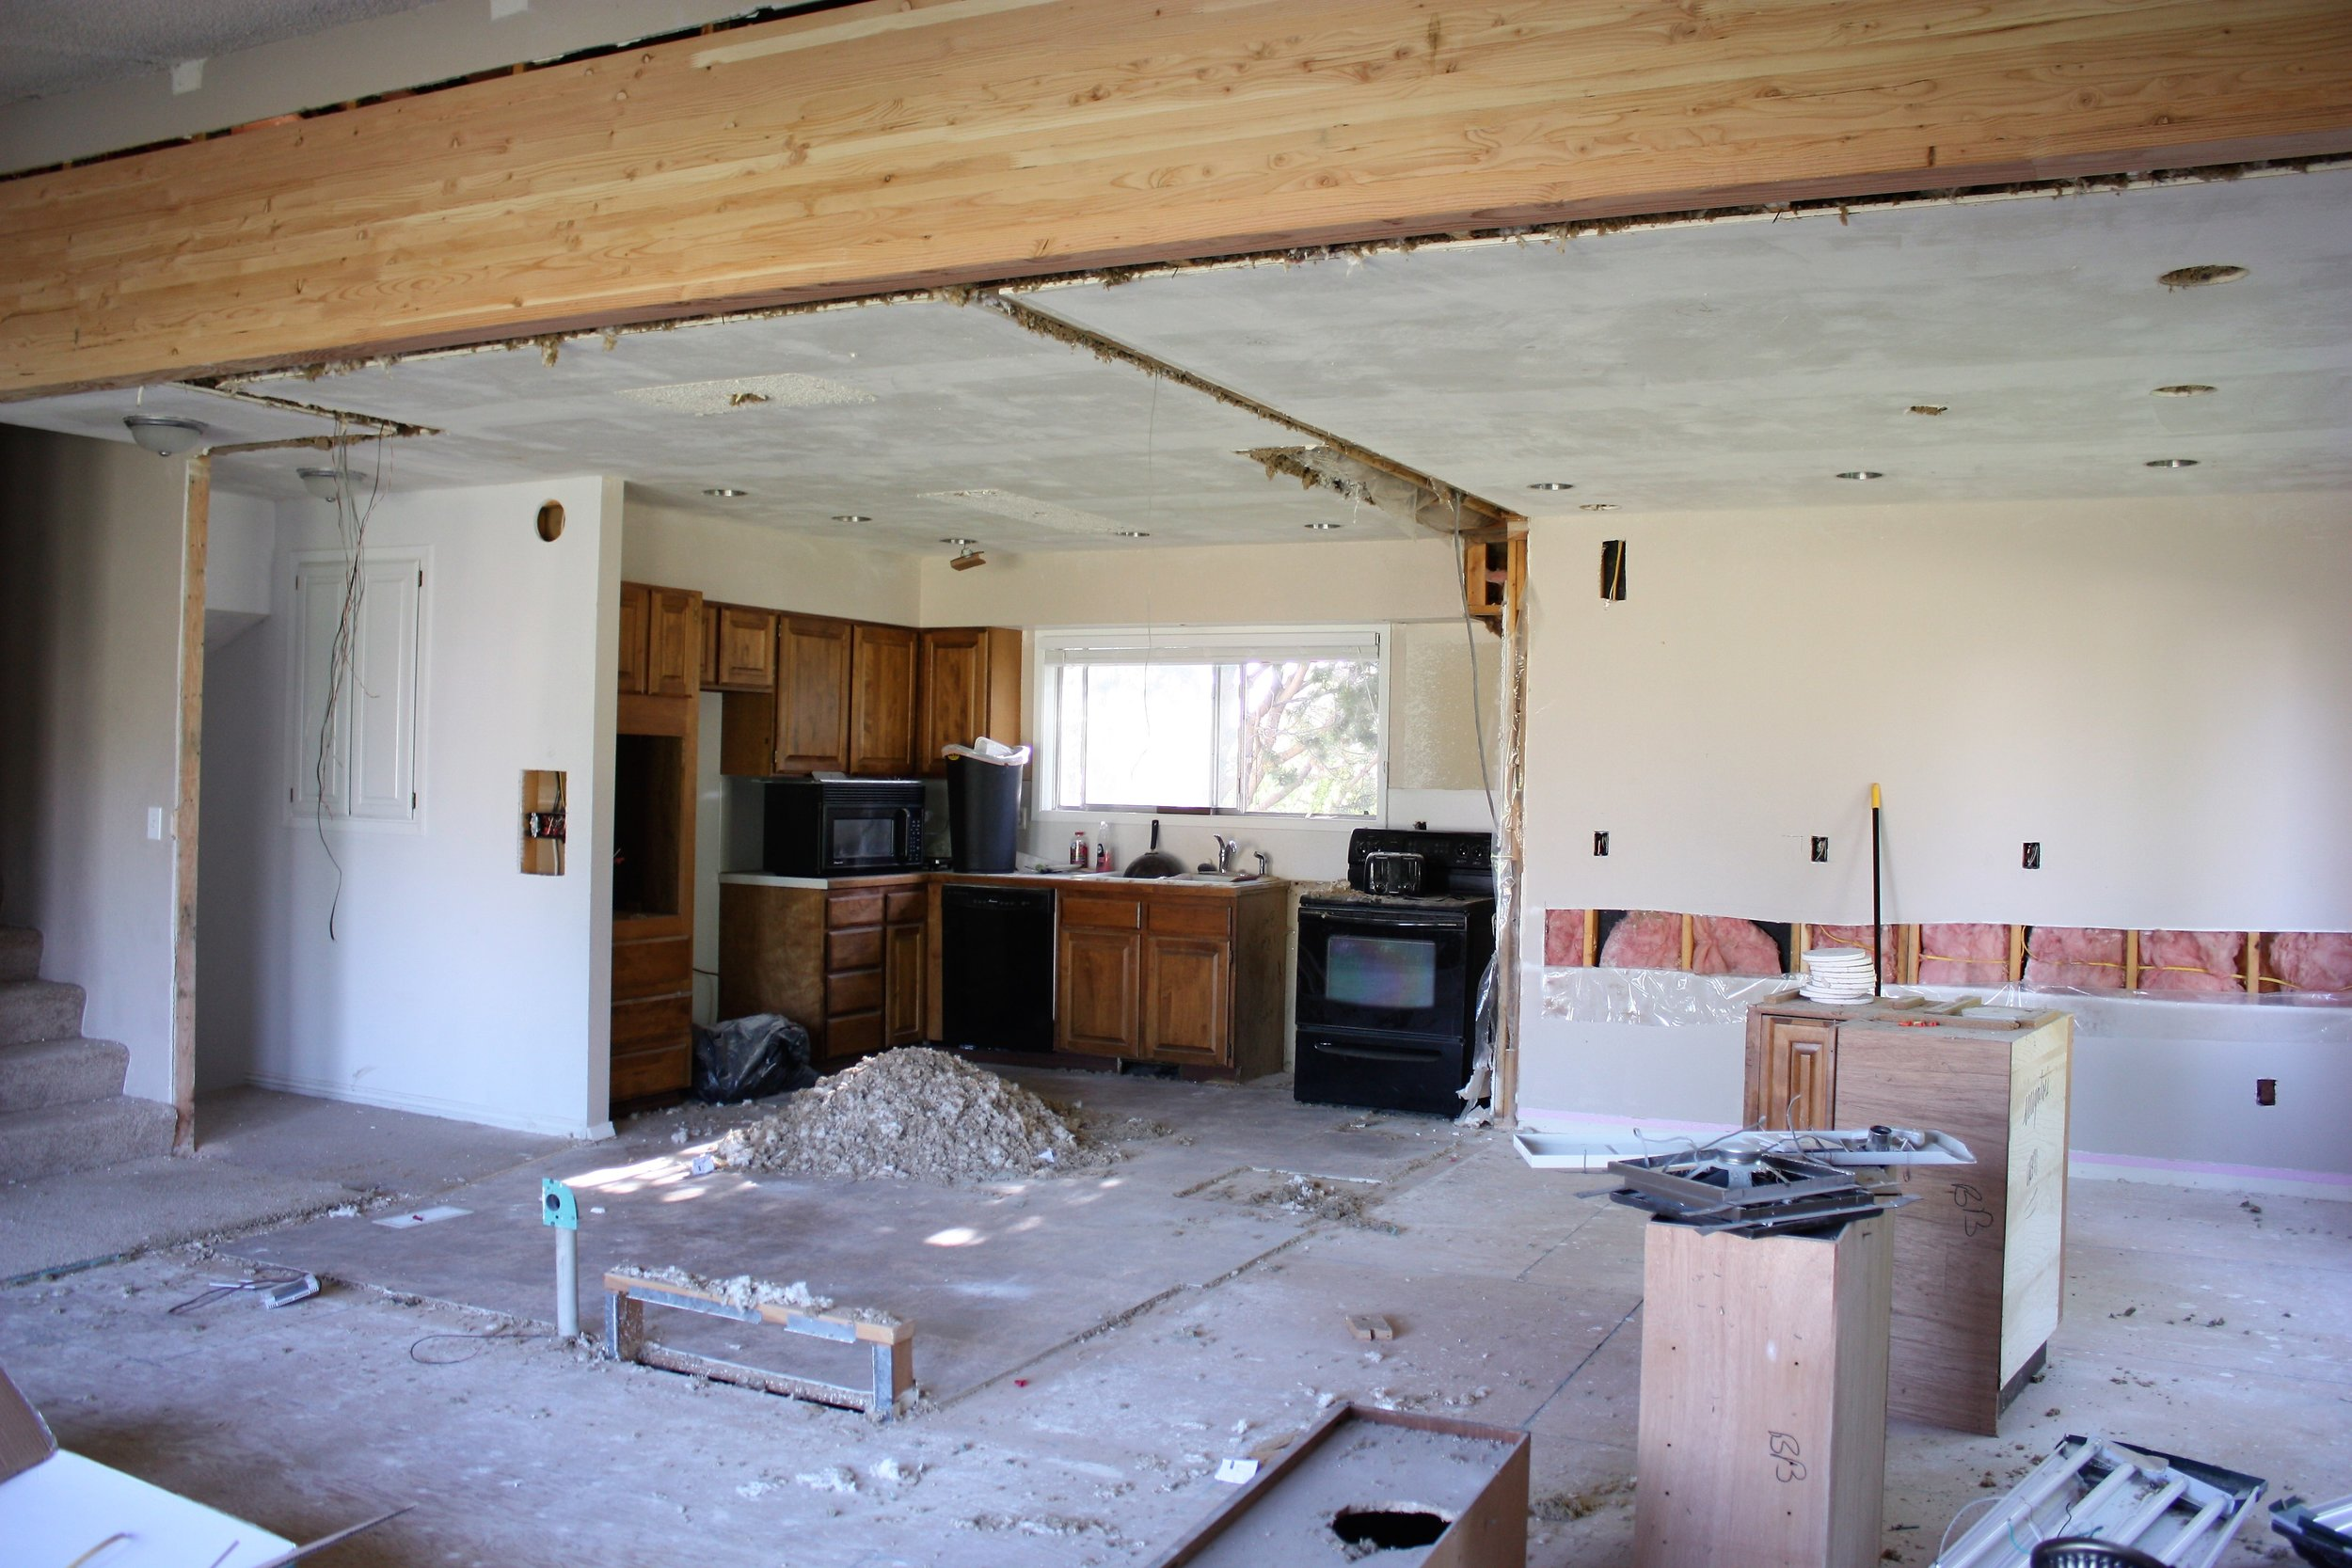 And finally, here is a view of the kitchen and dining area. You can see the electric going in and all the can lights we will soon have.